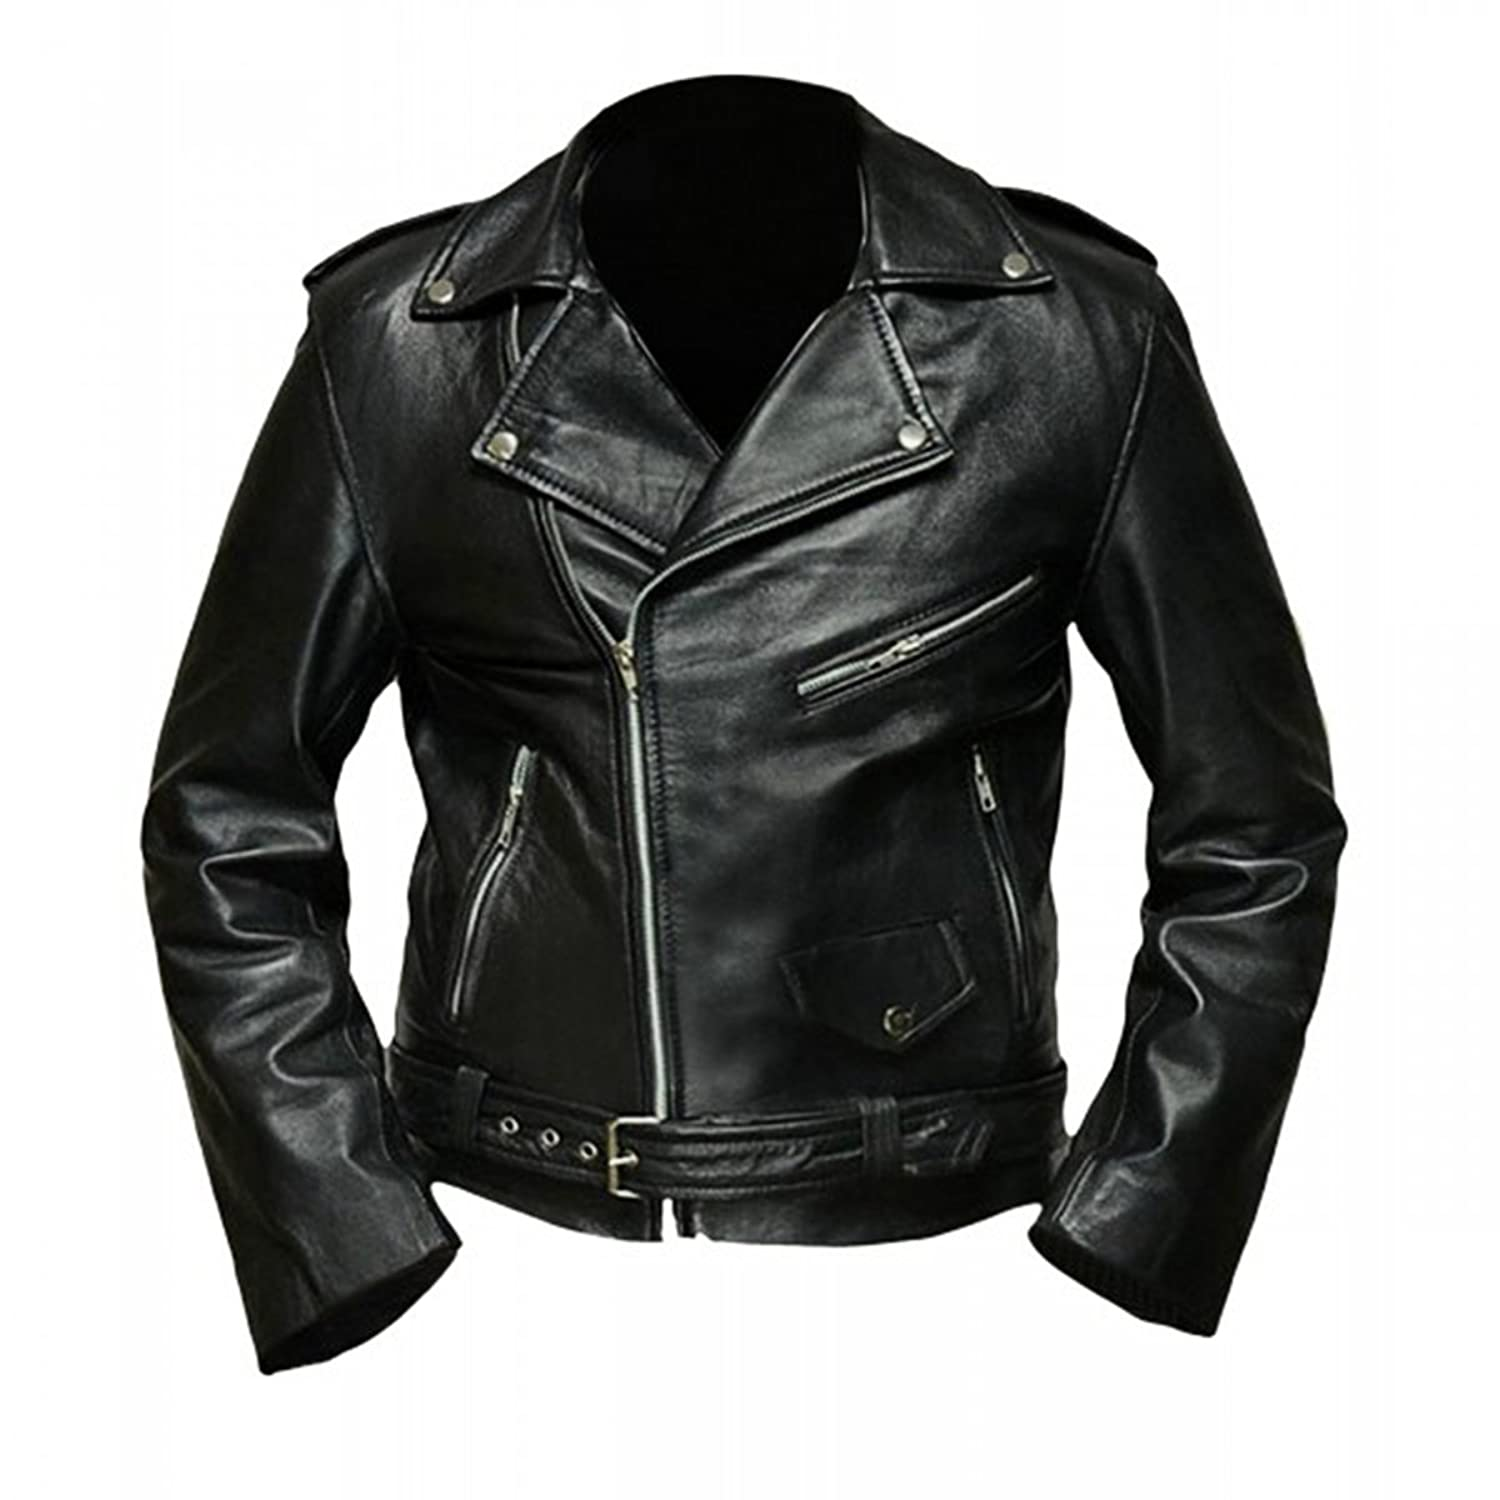 Terminator Arnold Schwarzenegger Real Leather Jacket - Black